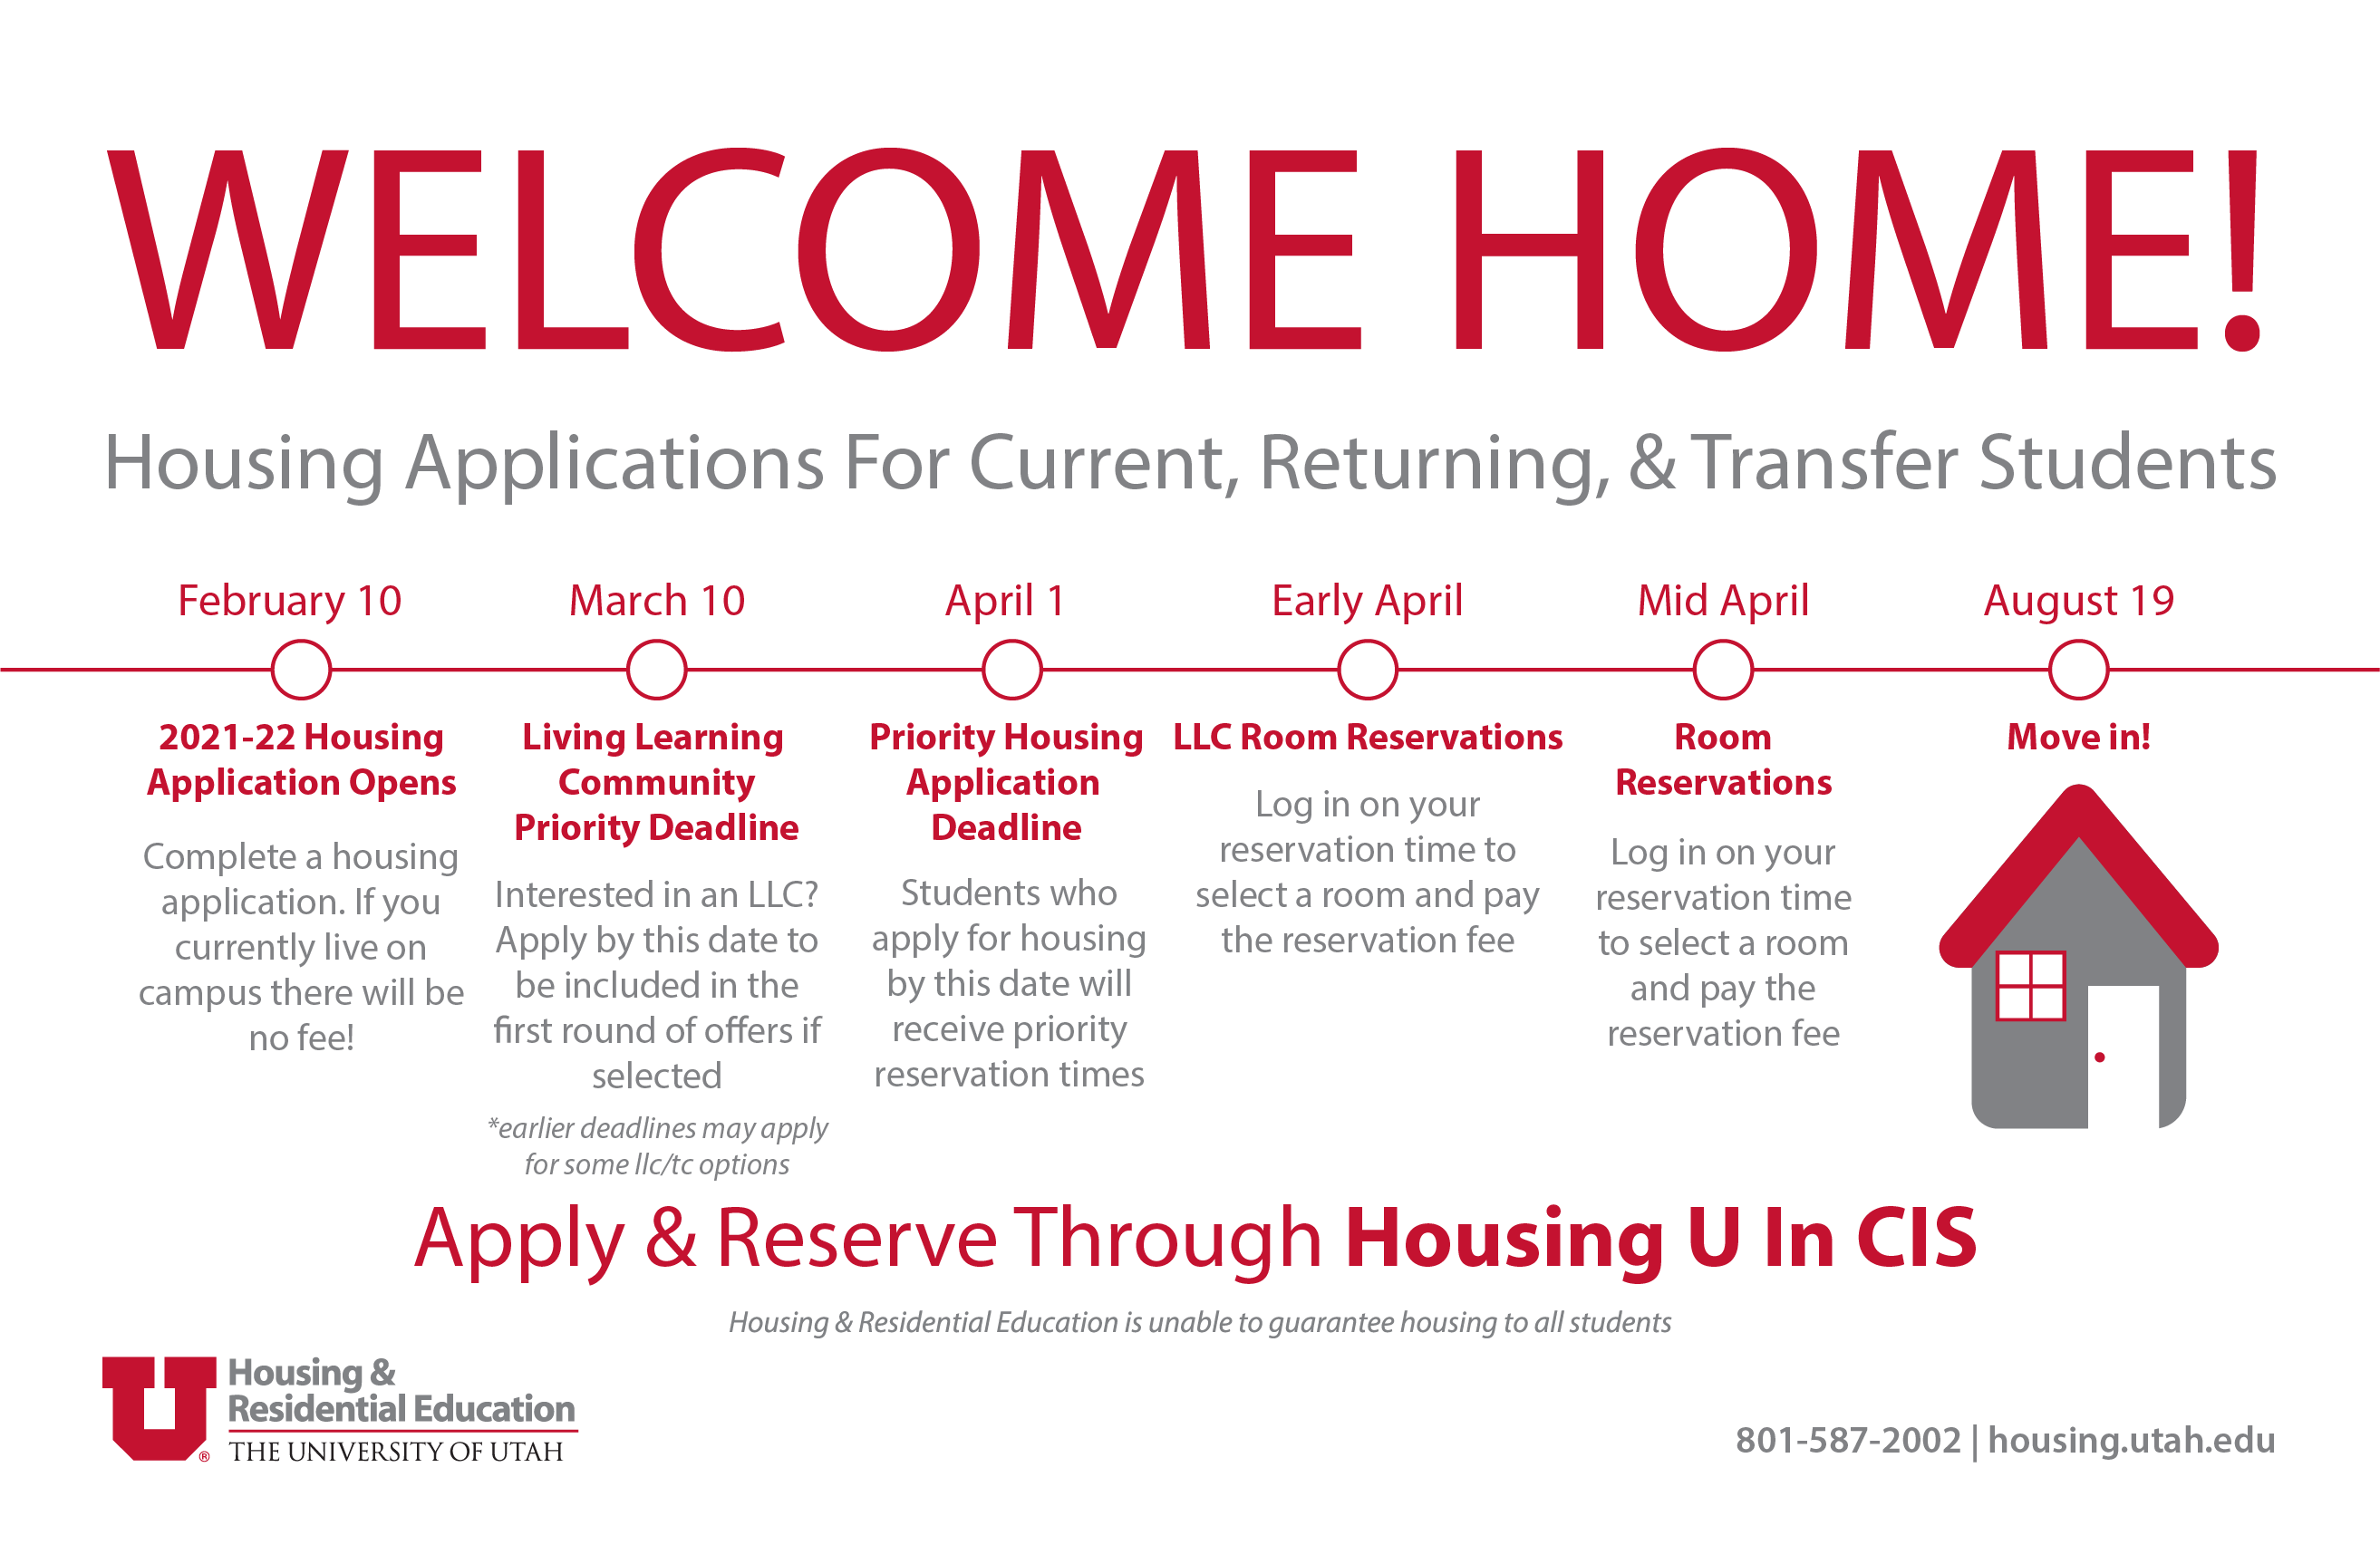 Housing Application Timeline